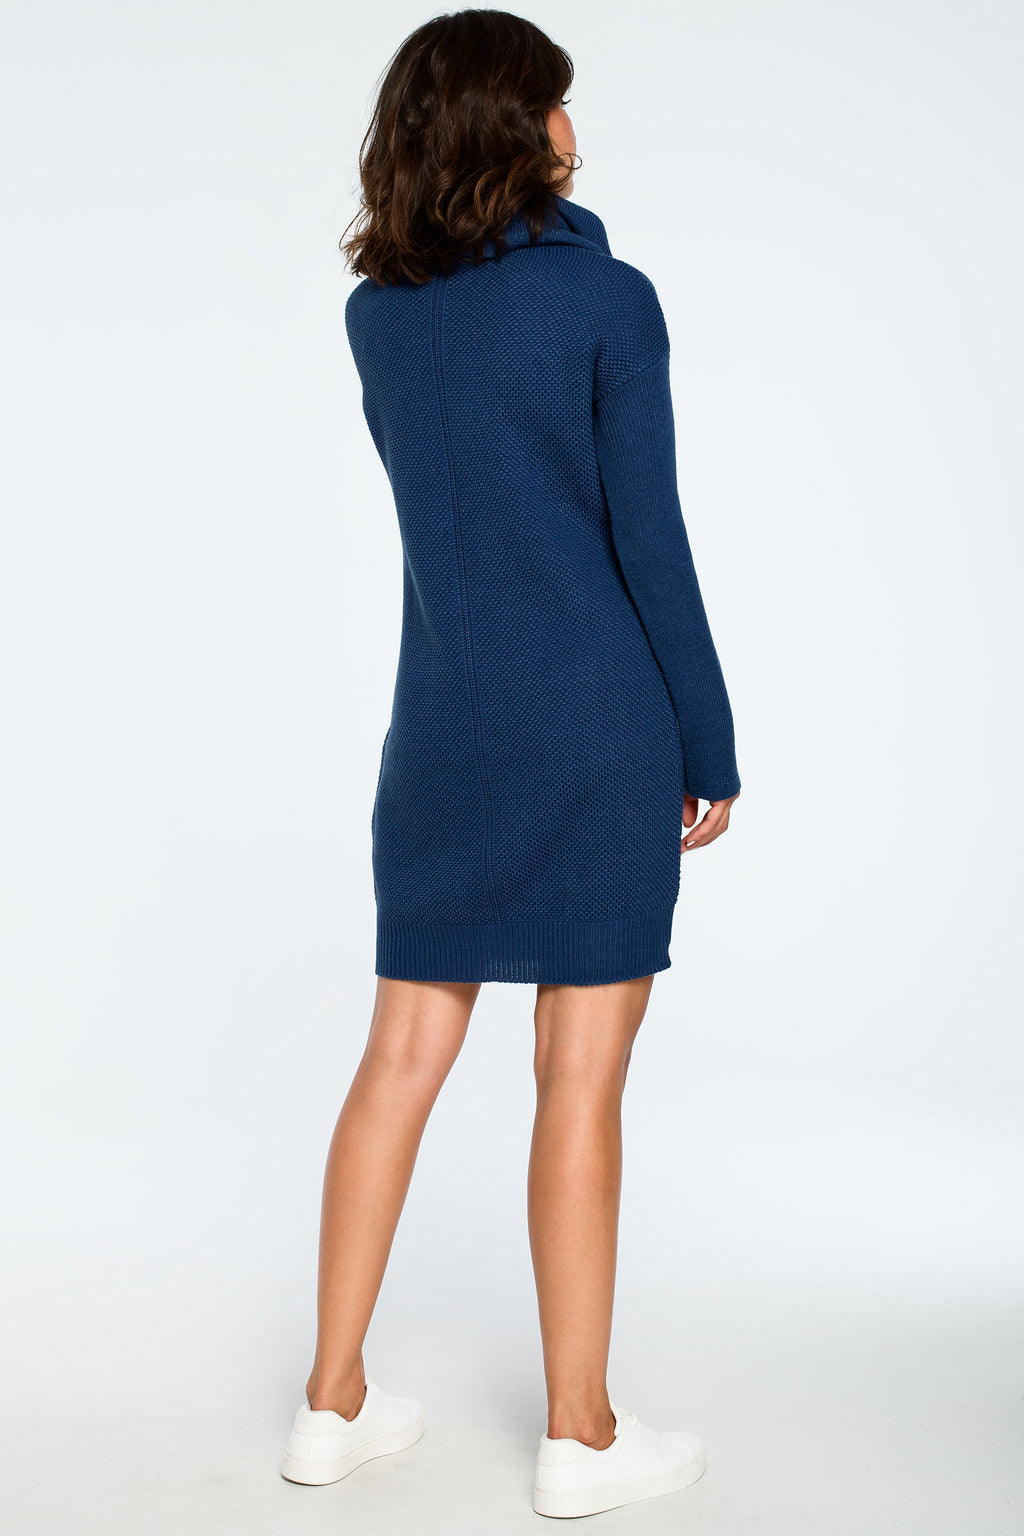 Blue High Collar Knit Dress - So Chic Boutique